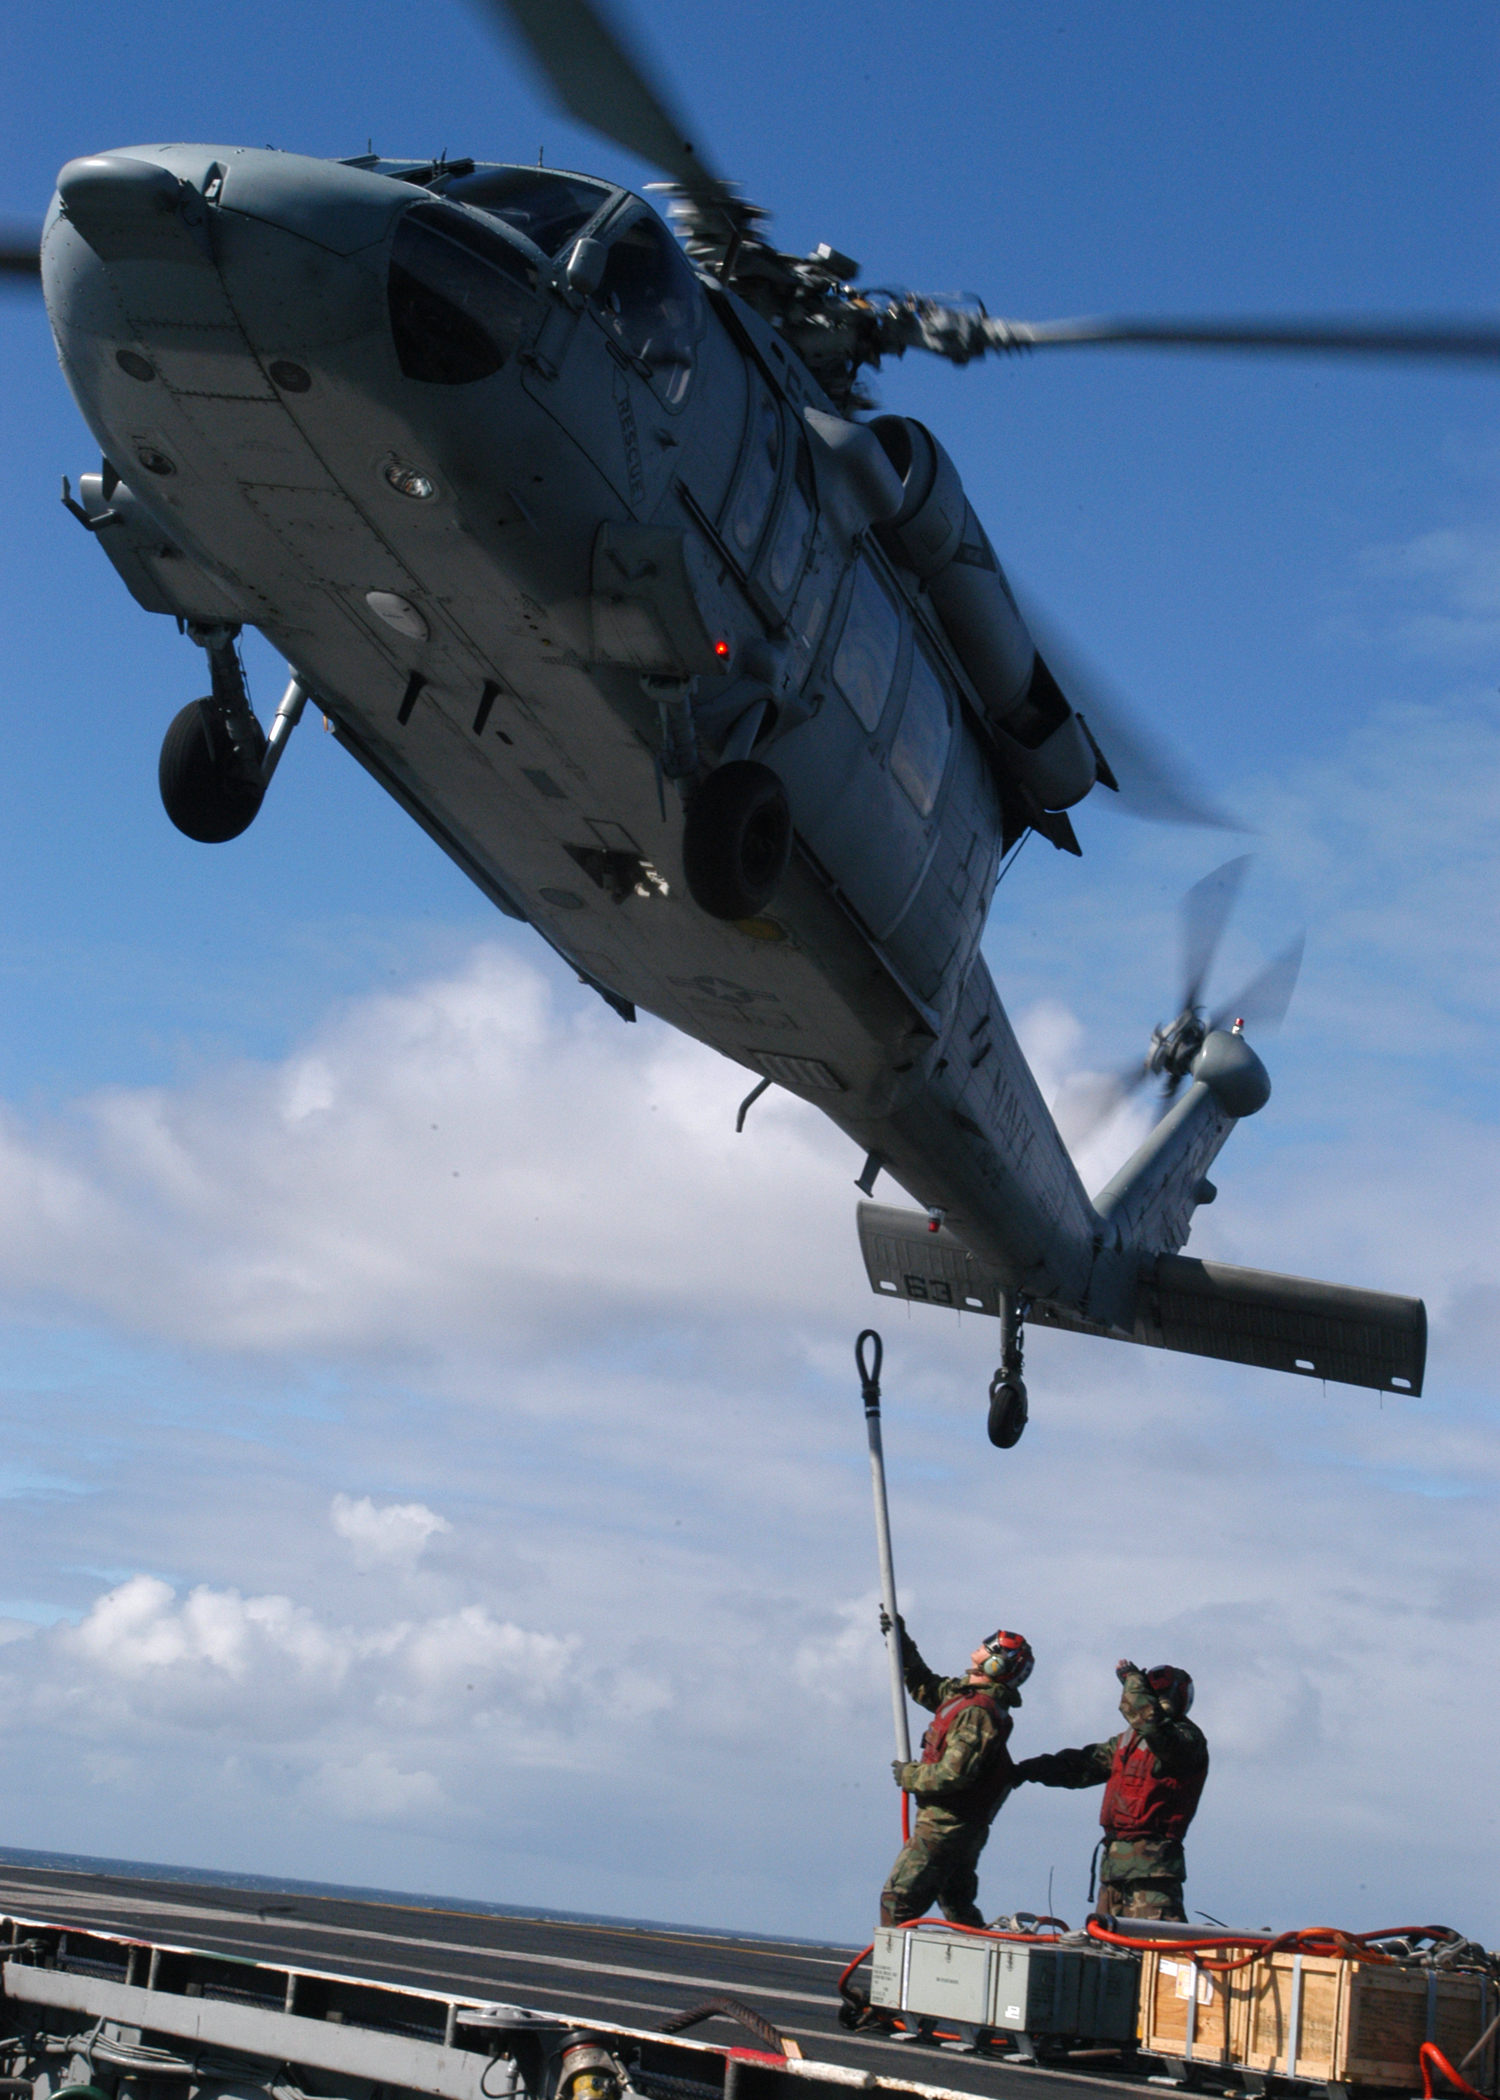 US Navy 040618-N-9742R-055 Aviation Ordnancemen uses a cargo pendant to attach a load of ordnance to a MH-60S Knighthawk